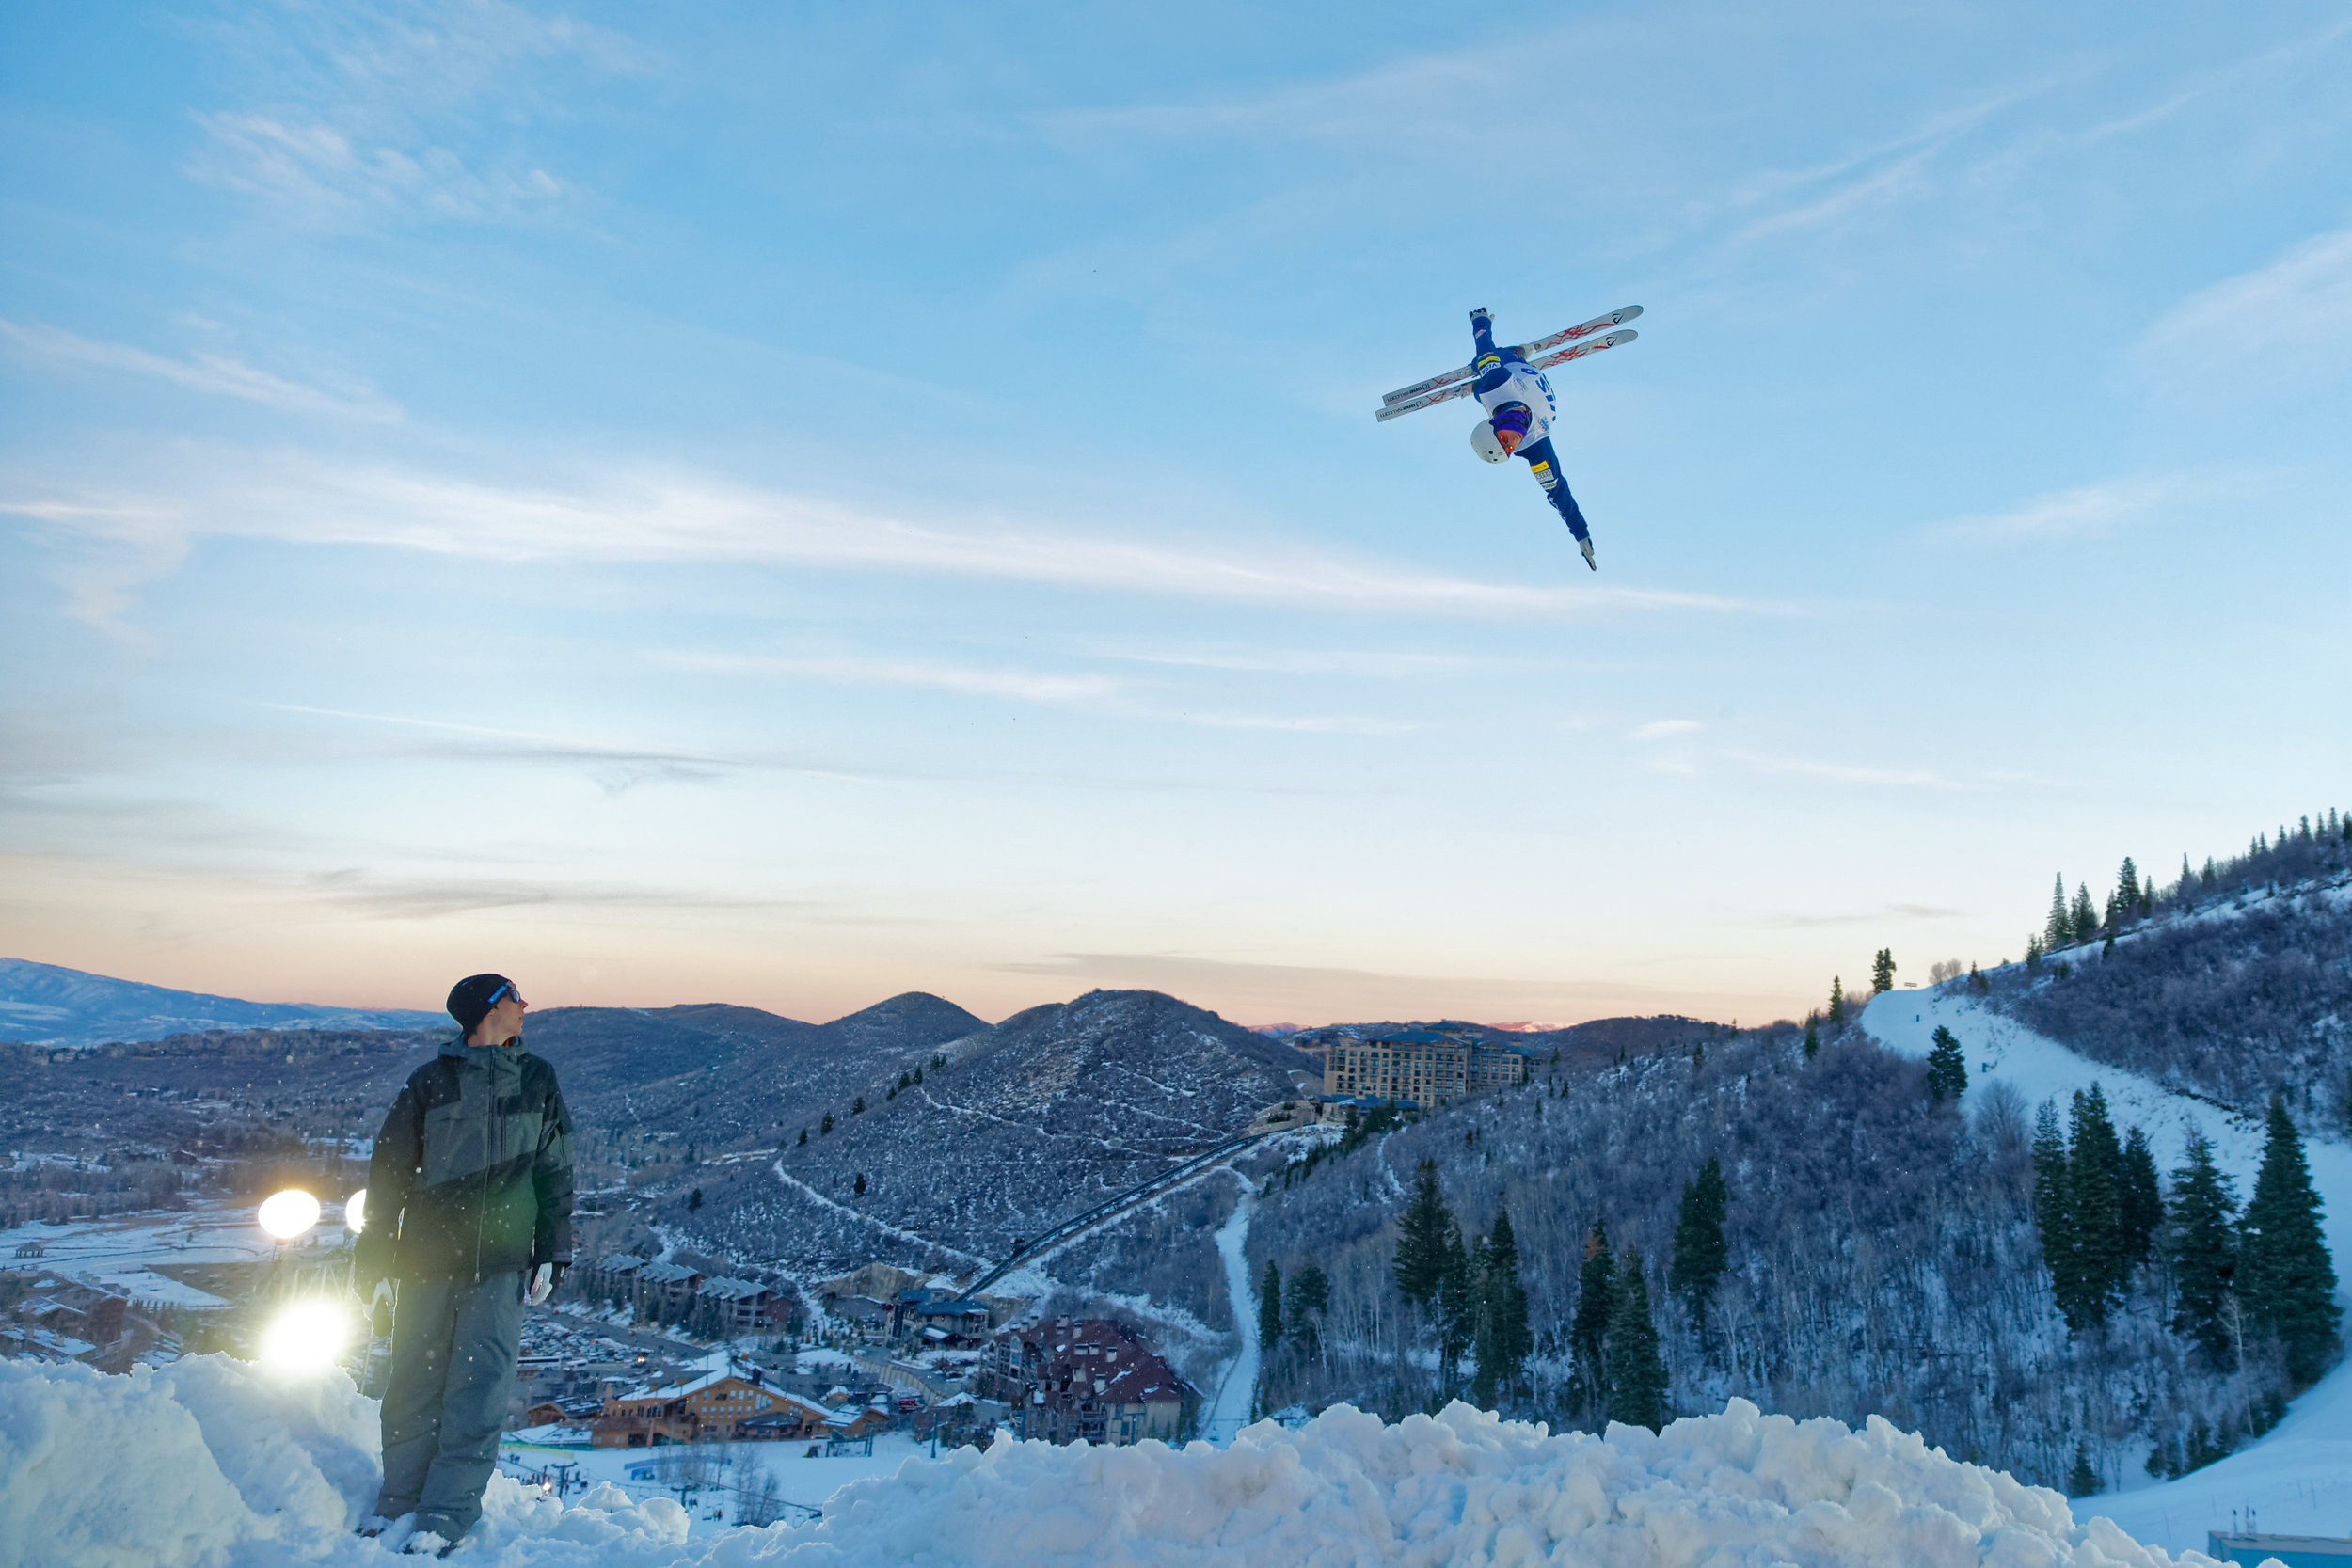 Aerials finals